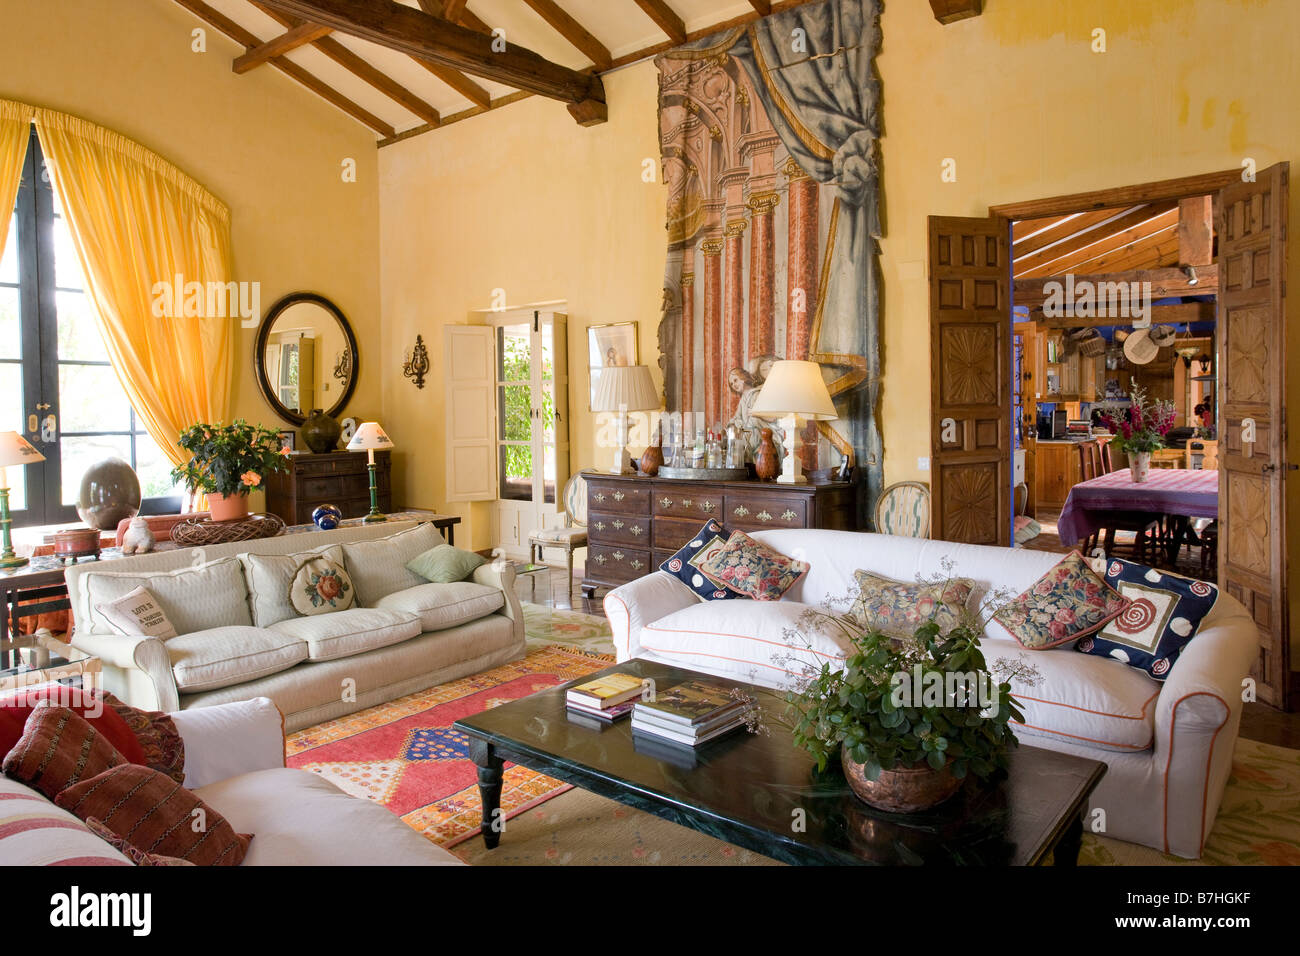 Spanish Living Room Design. Large white sofas in yellow Spanish living room with trompe l oeil curtain  and pillar painted on wall beside doorway to kitchen